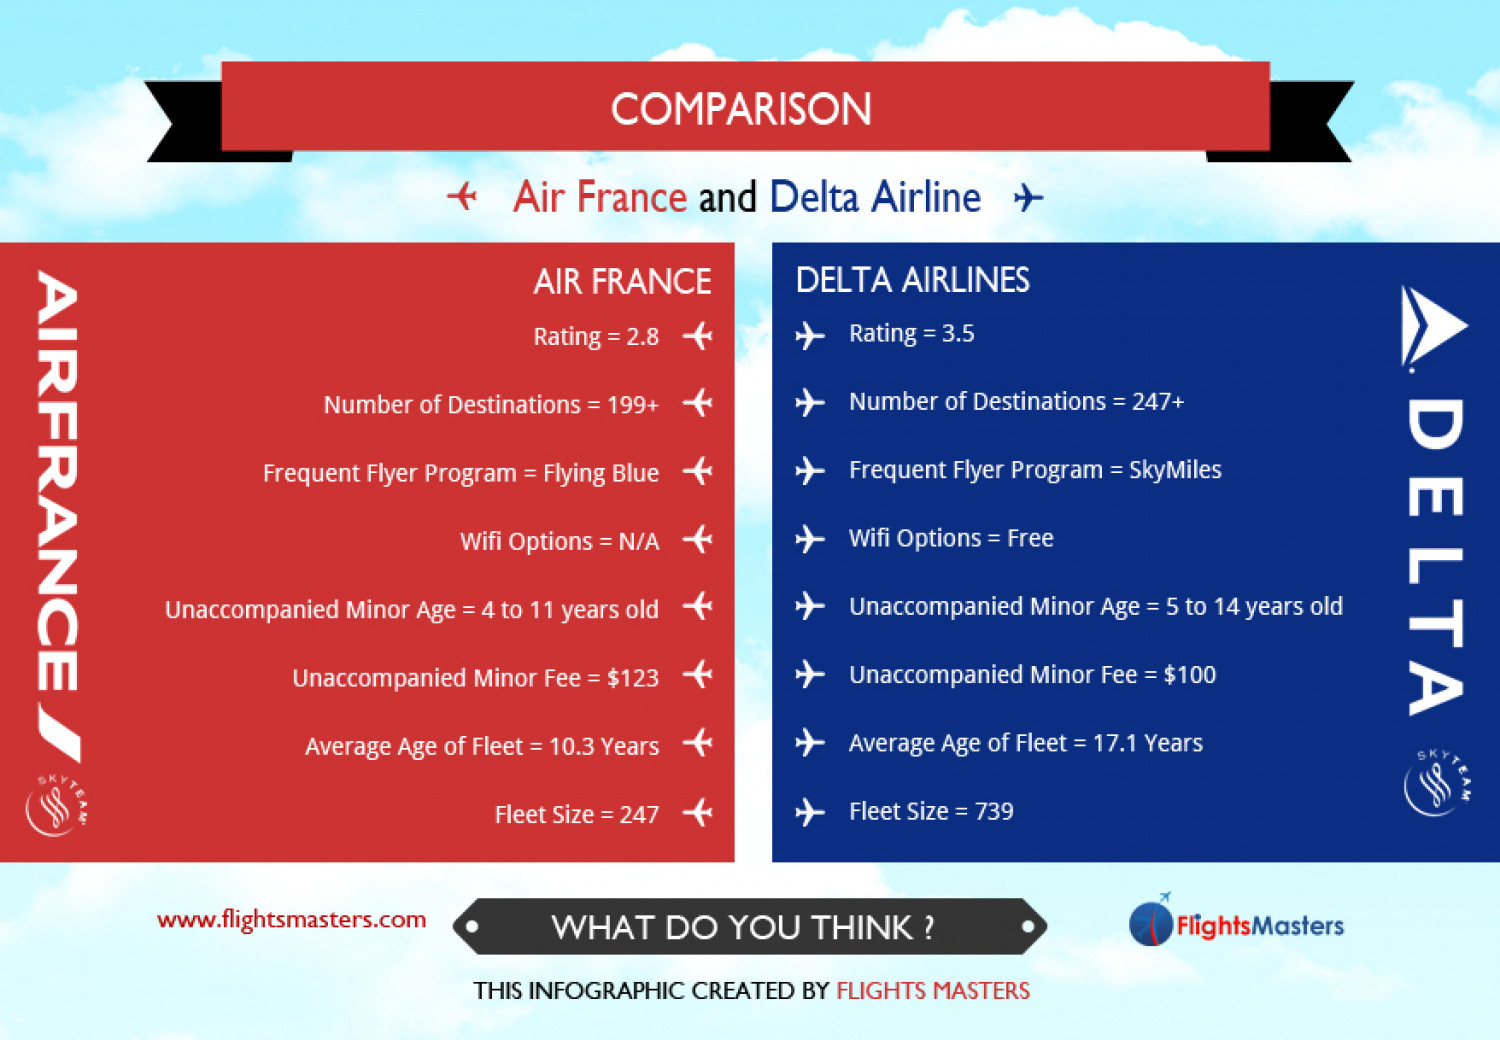 Comparison Air France and Delta Airlines Infographic